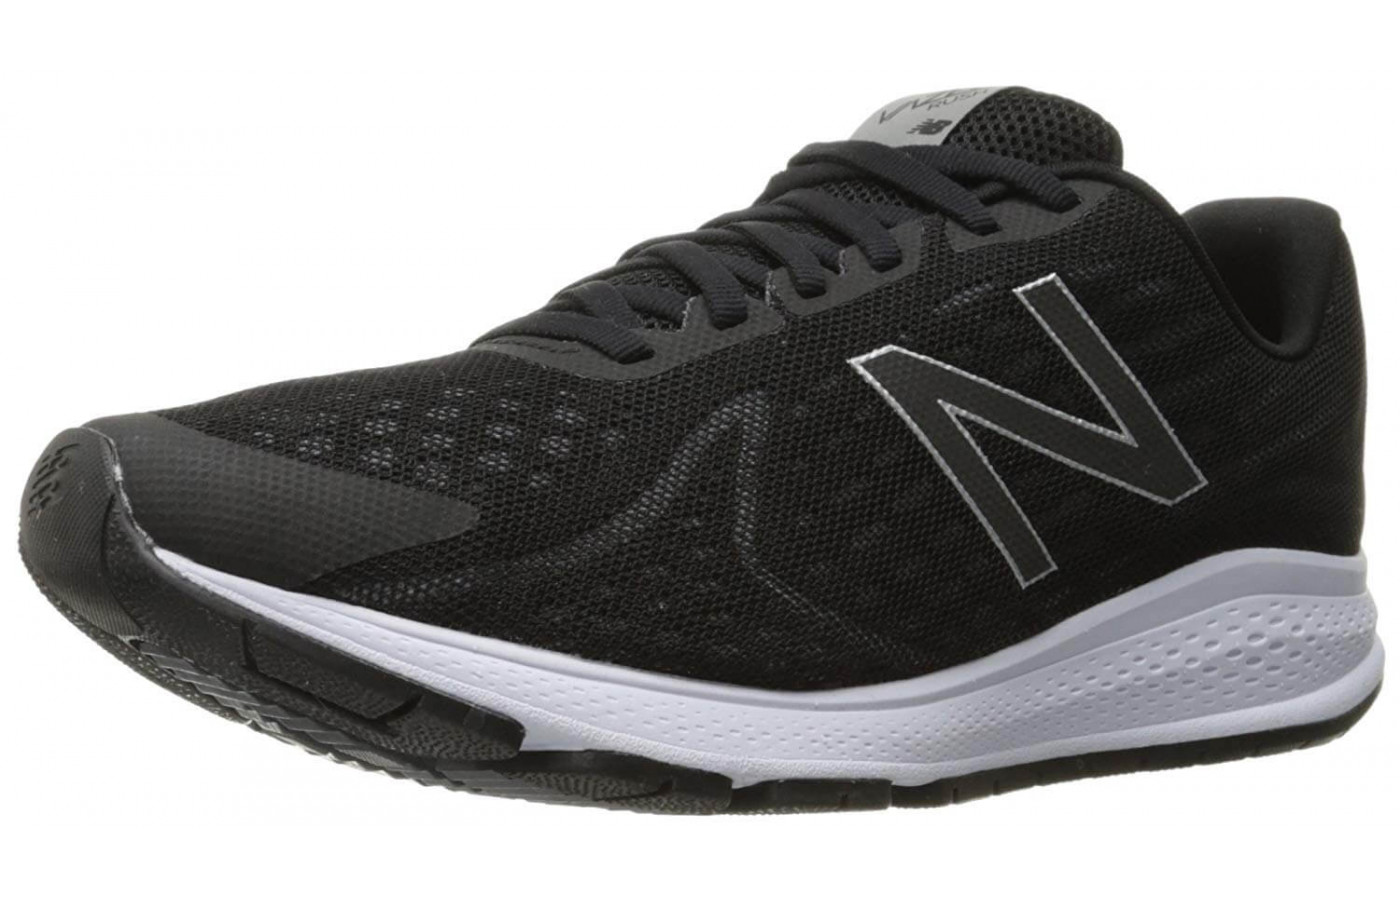 An angled view of the New Balance Vazee Rush v2.